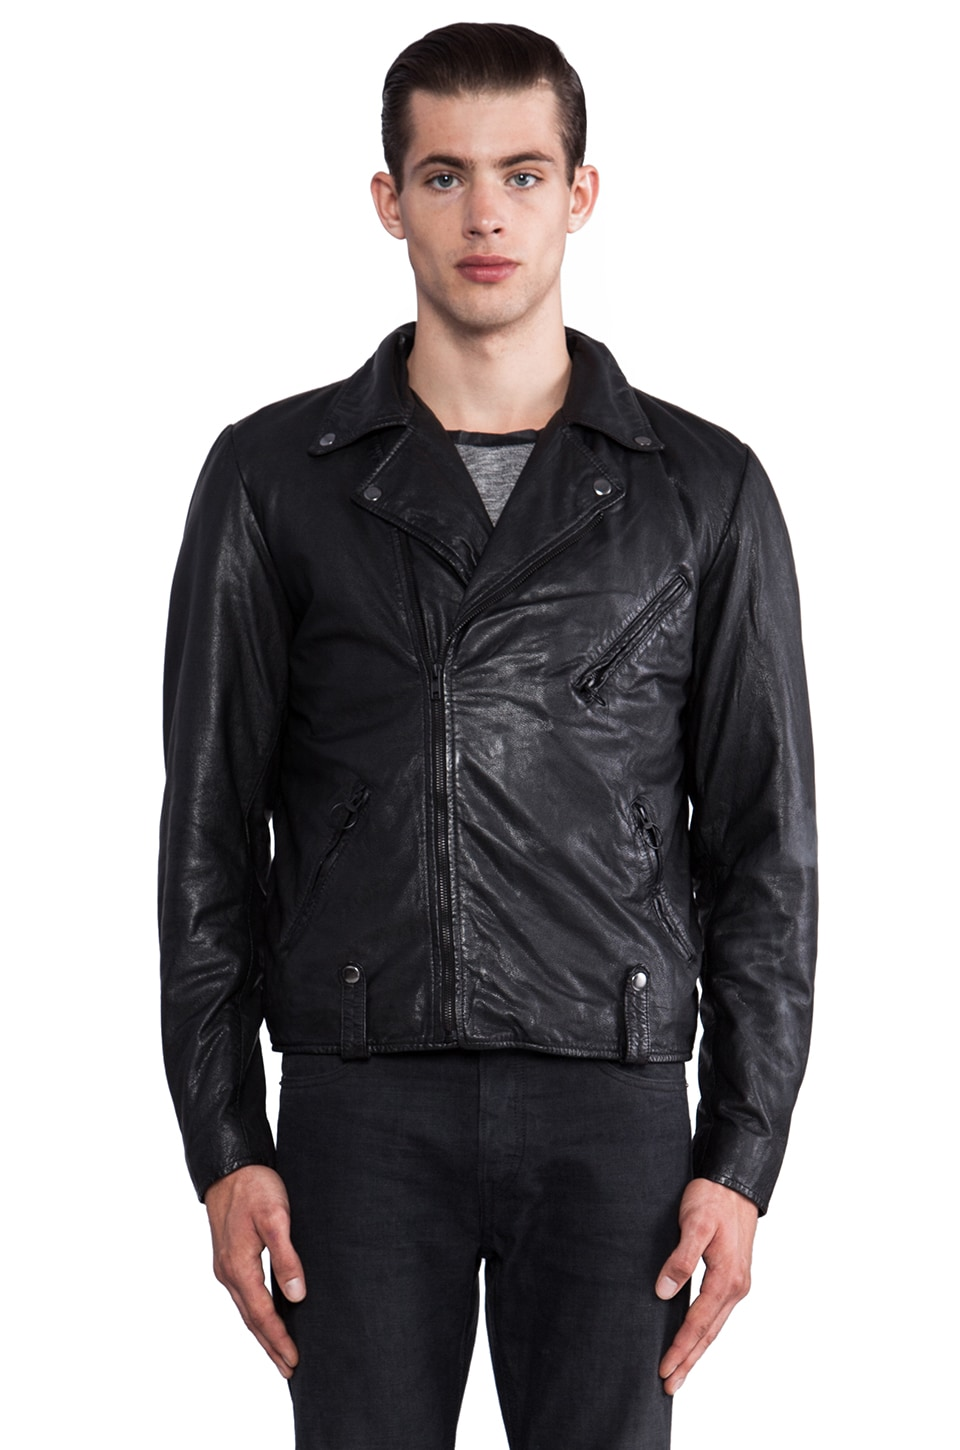 NEUW Perfect Jacket Leather Jacket in Black